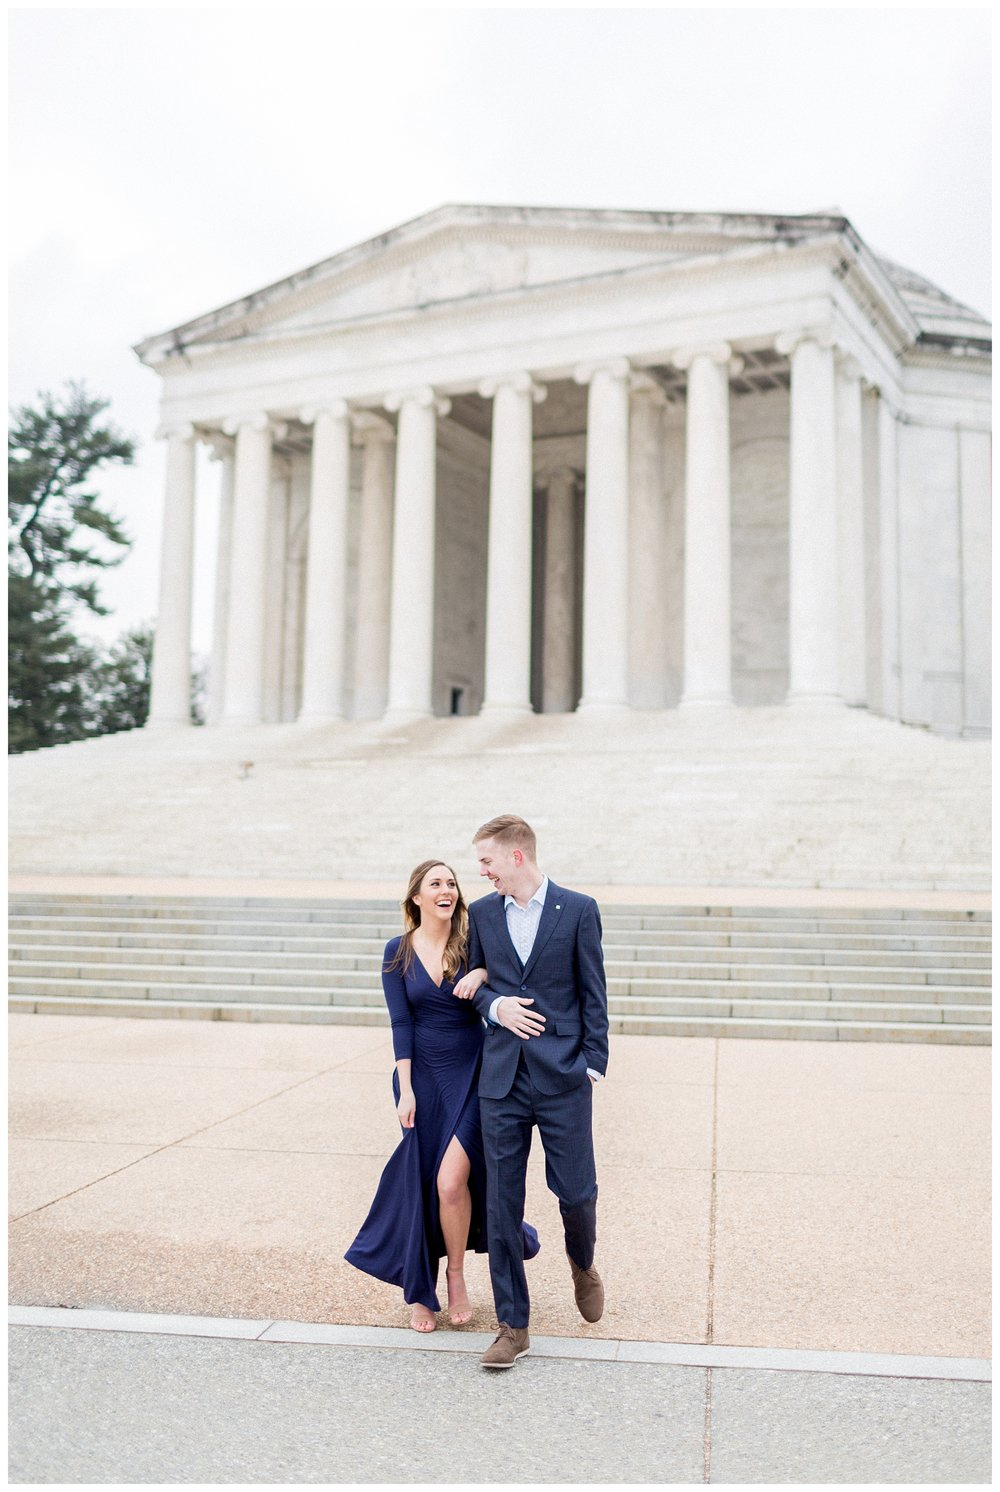 Washingon DC Engagement Photos | Jefferson Memorial Engagement | Kir Tuben_0000.jpg